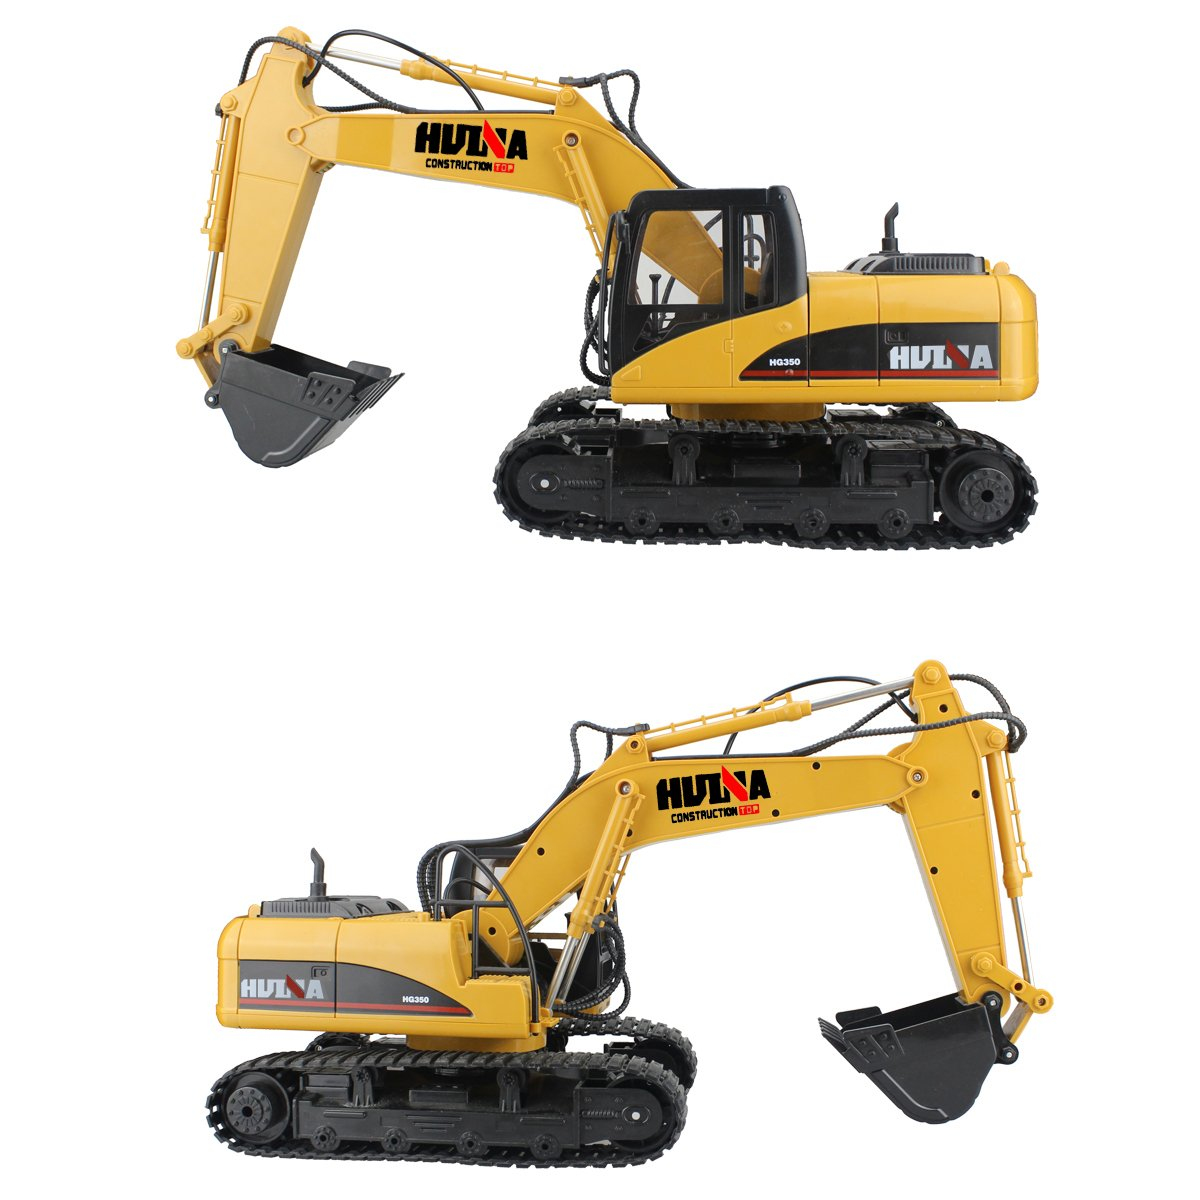 RC Truck Remote Control Excavator Crawler Tractor 15 Channel 2.4G Construction Vehicle Digger Electronics Hobby Toys with Simulation Sound and Flashing Lights by fisca (Image #3)